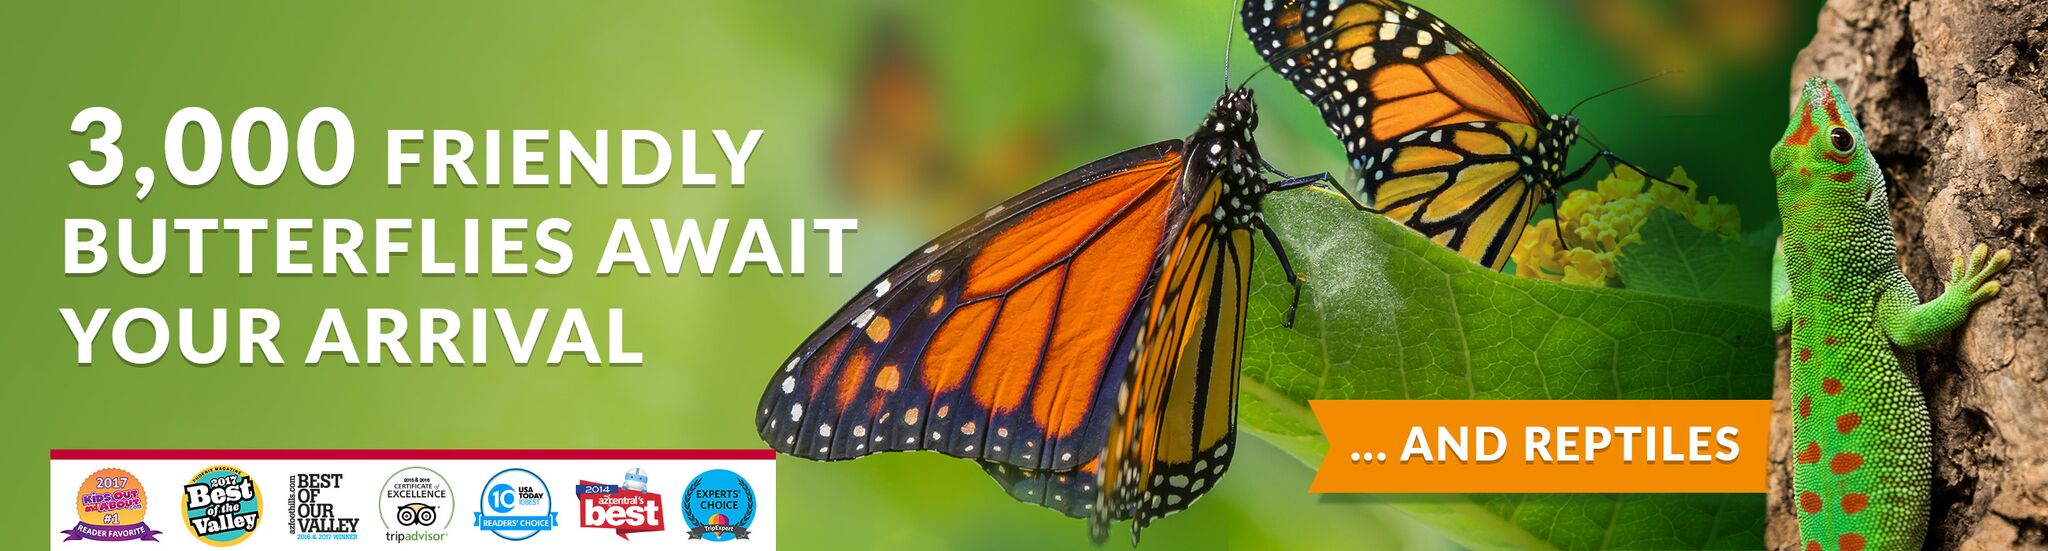 Butterfly Wonderland A Rainforest Experience Tiket Park Insect Kingdom General Admission Combination Pass Annual